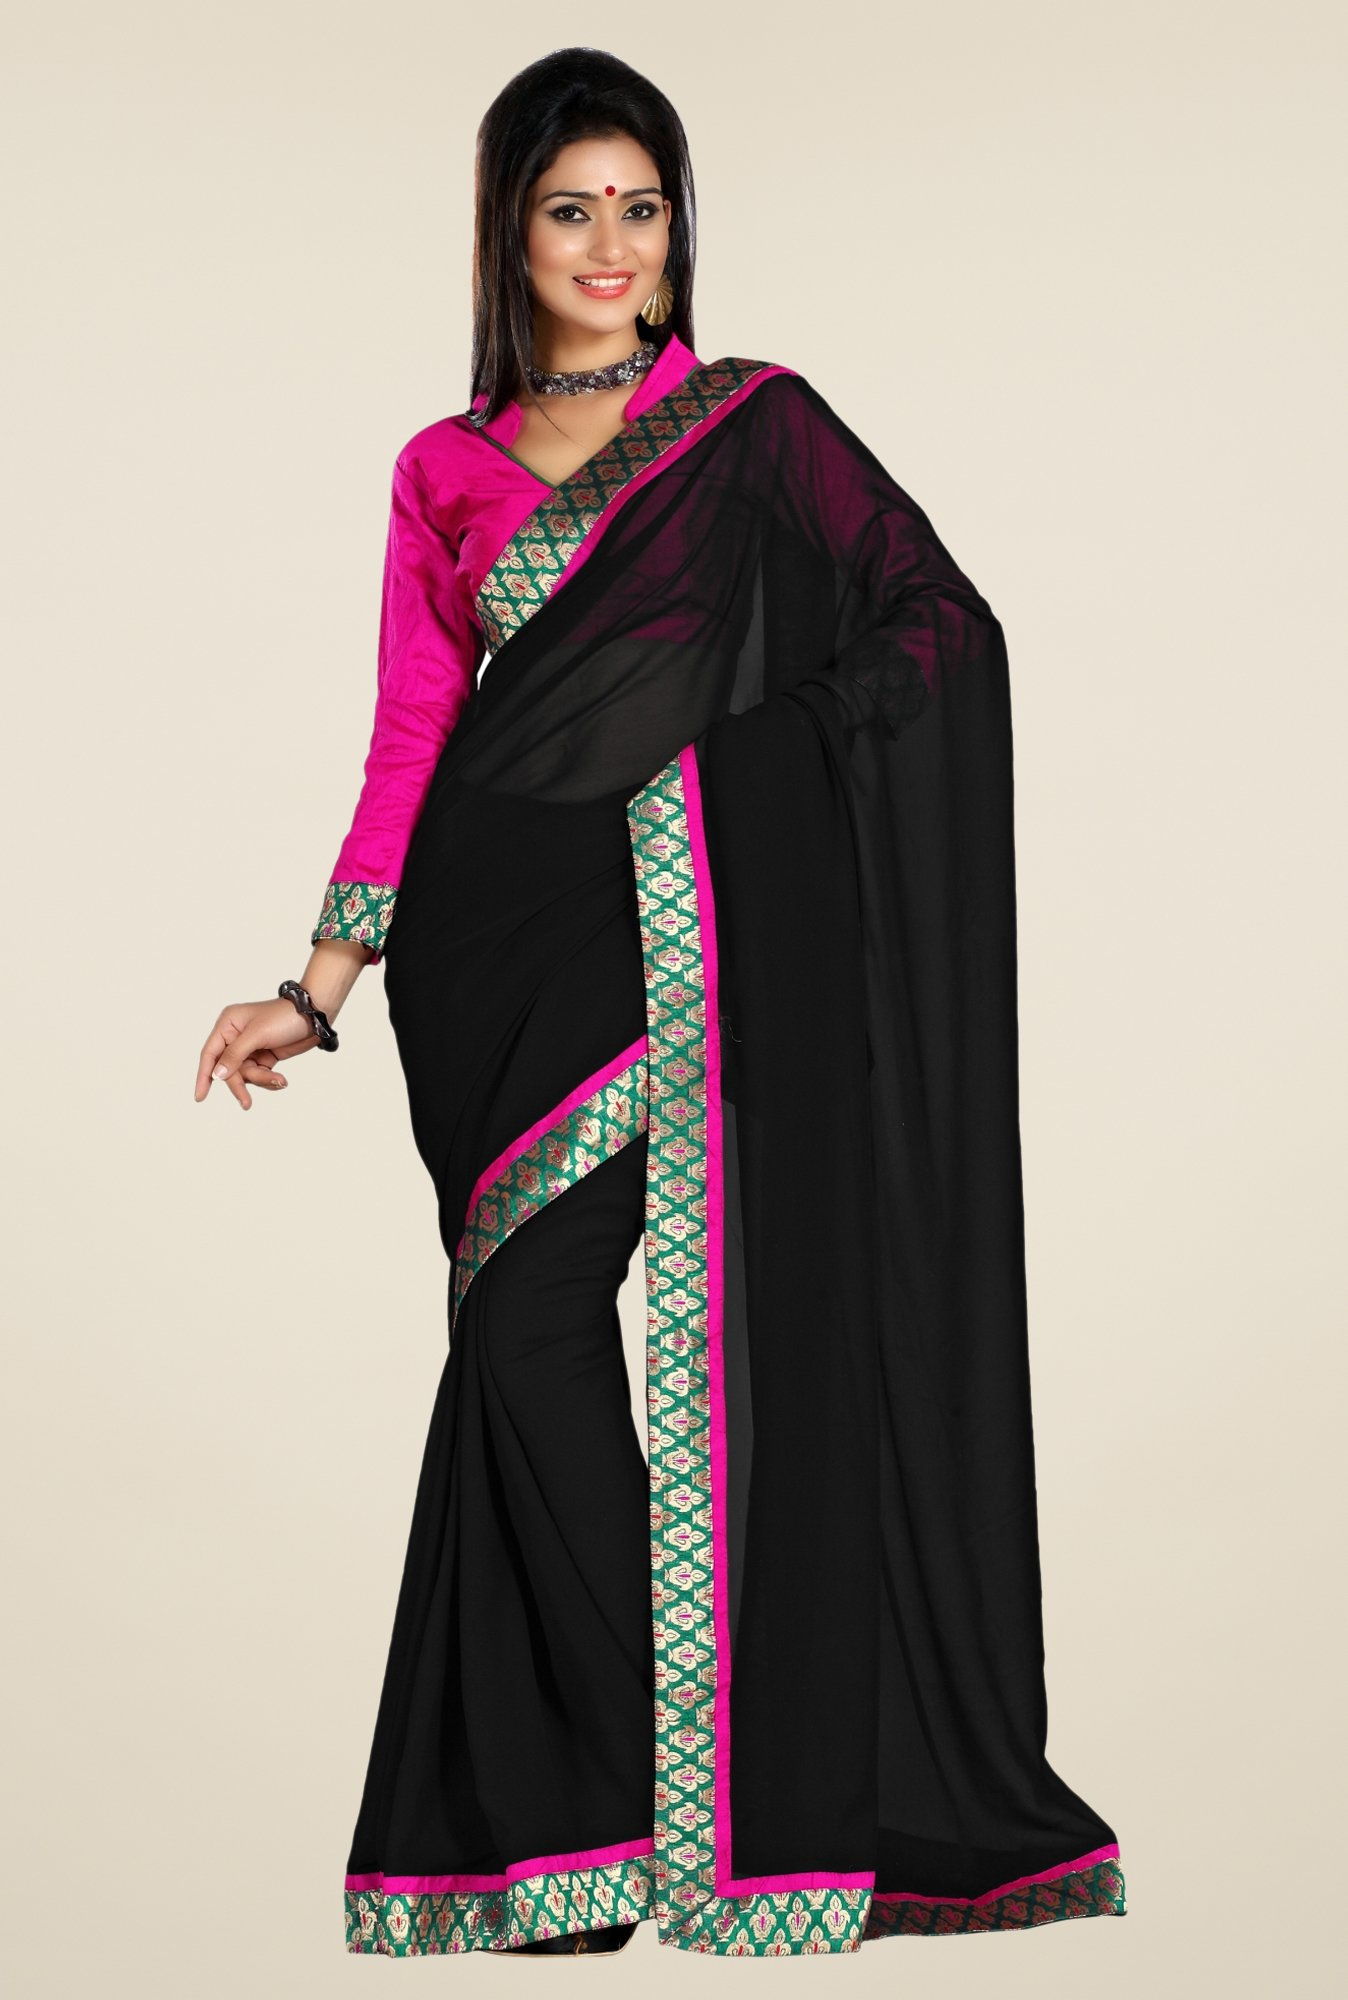 Triveni Black Solid Faux Georgette Saree